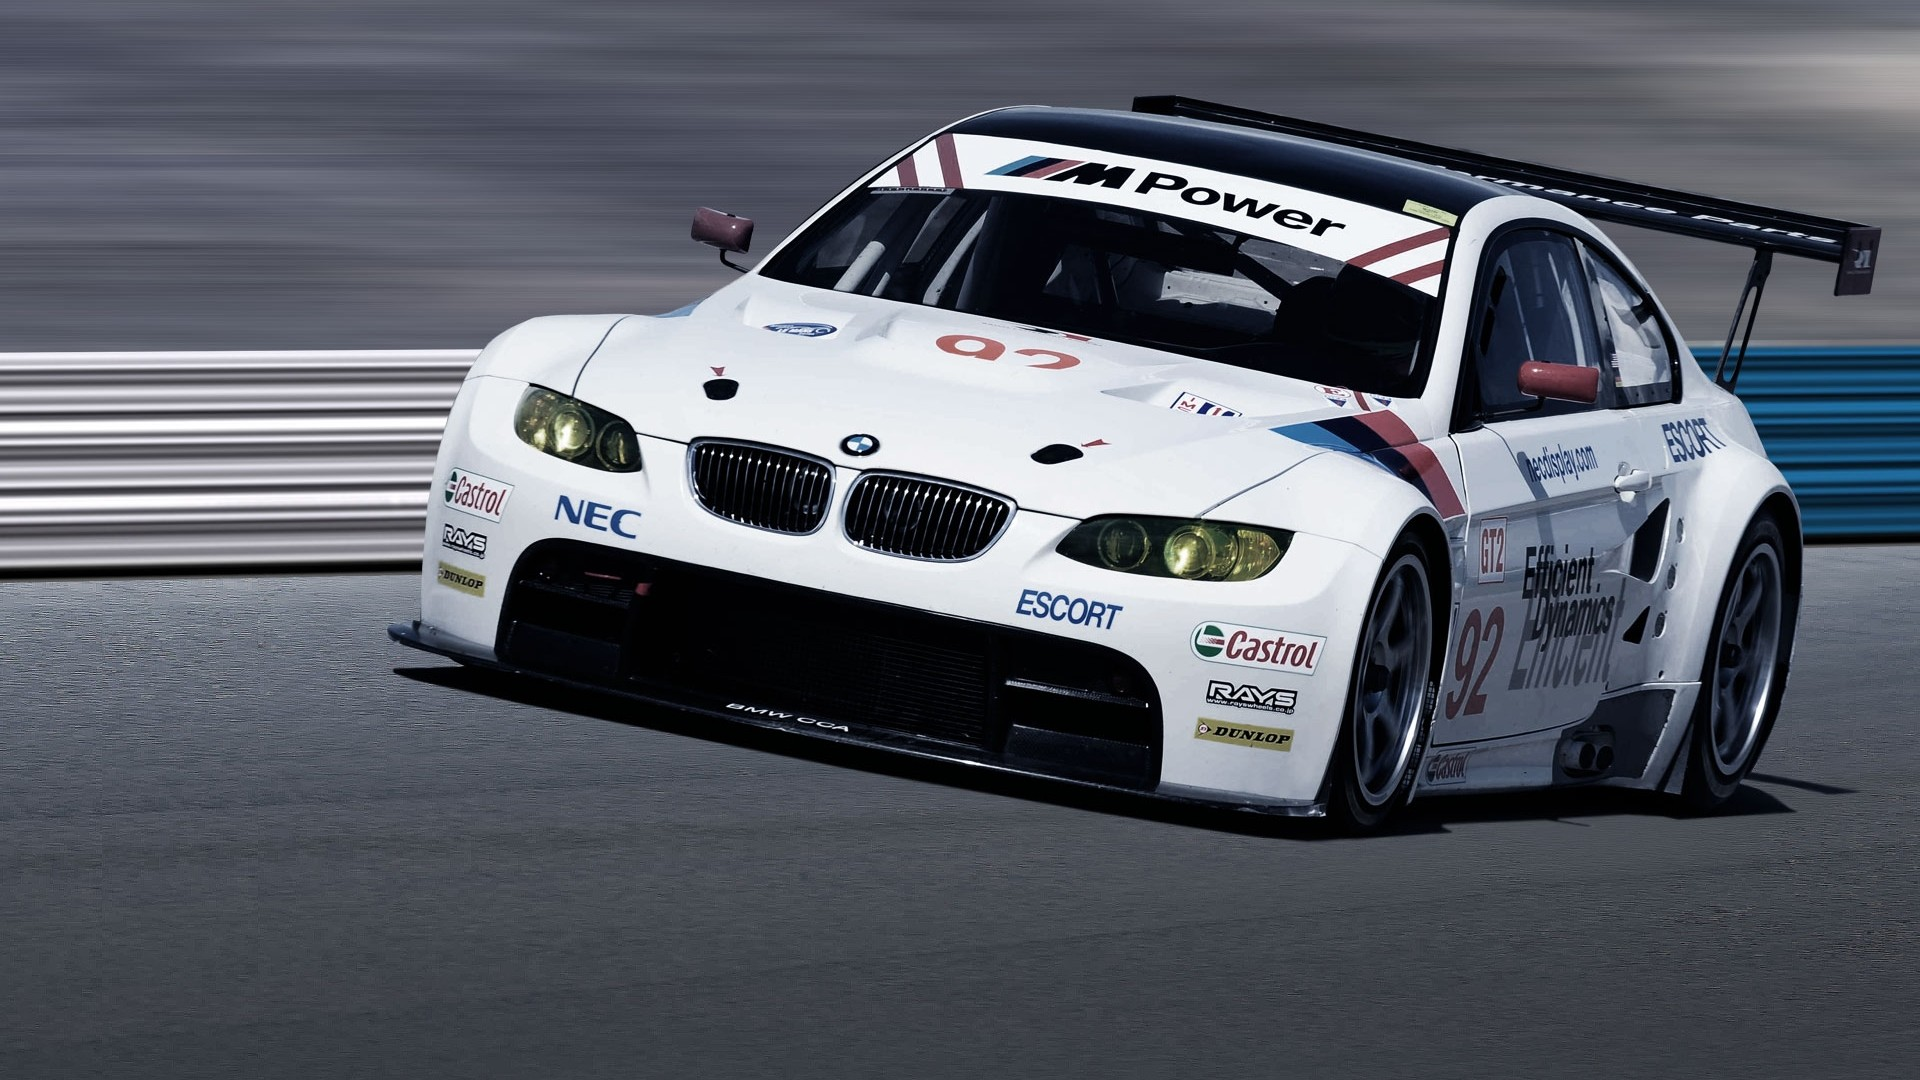 M3 GTR E92 HD Wallpaper For Android